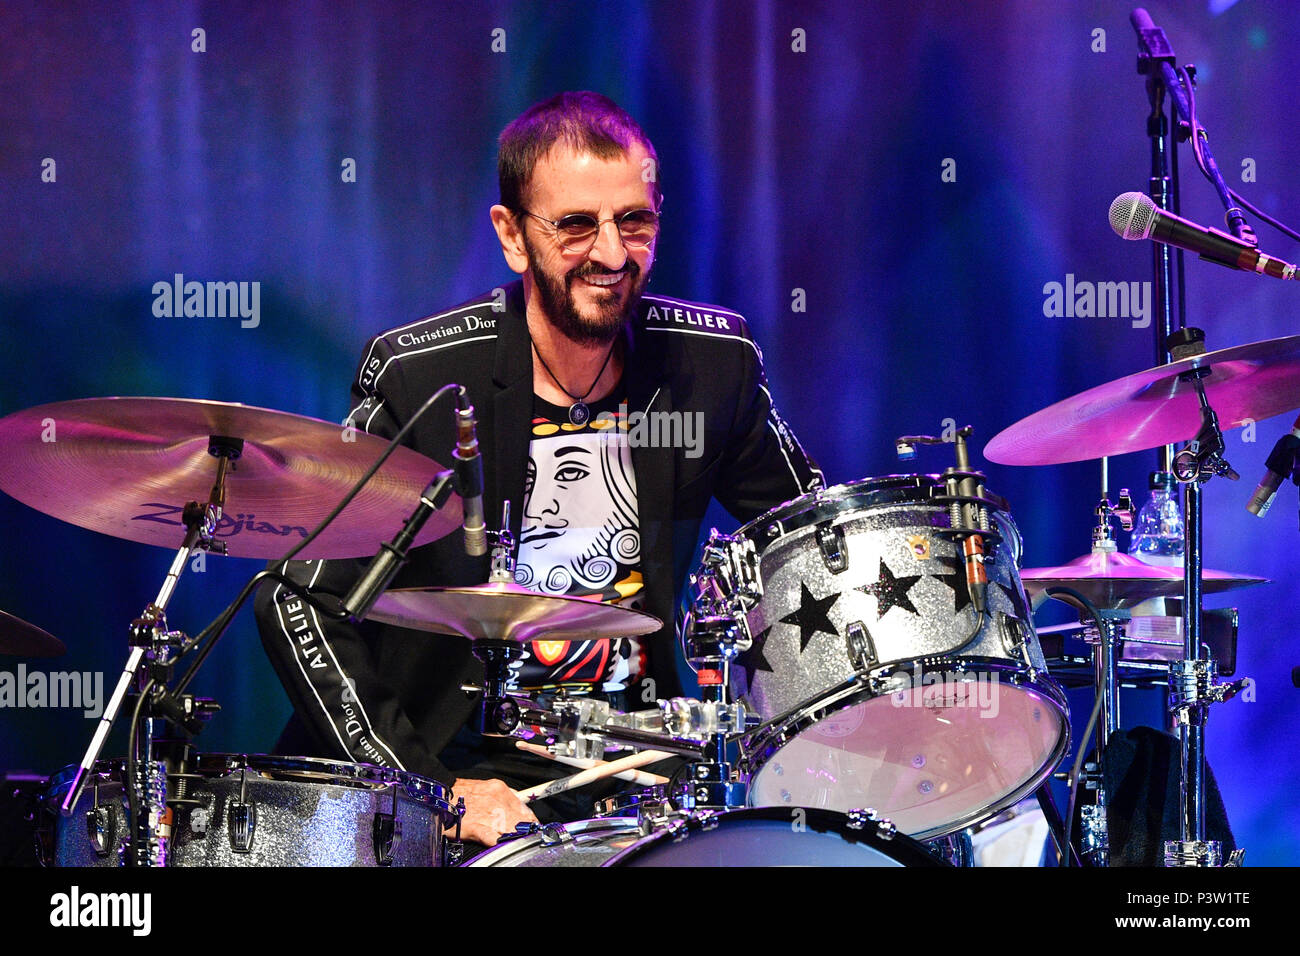 Prague, Czech Republic. 19th June, 2018. British singer Ringo Starr performs during the concert with his All Star Band at the Prague Congress Centre, Czech Republic, on June 19, 2018. Credit: Michal Kamaryt/CTK Photo/Alamy Live News - Stock Image